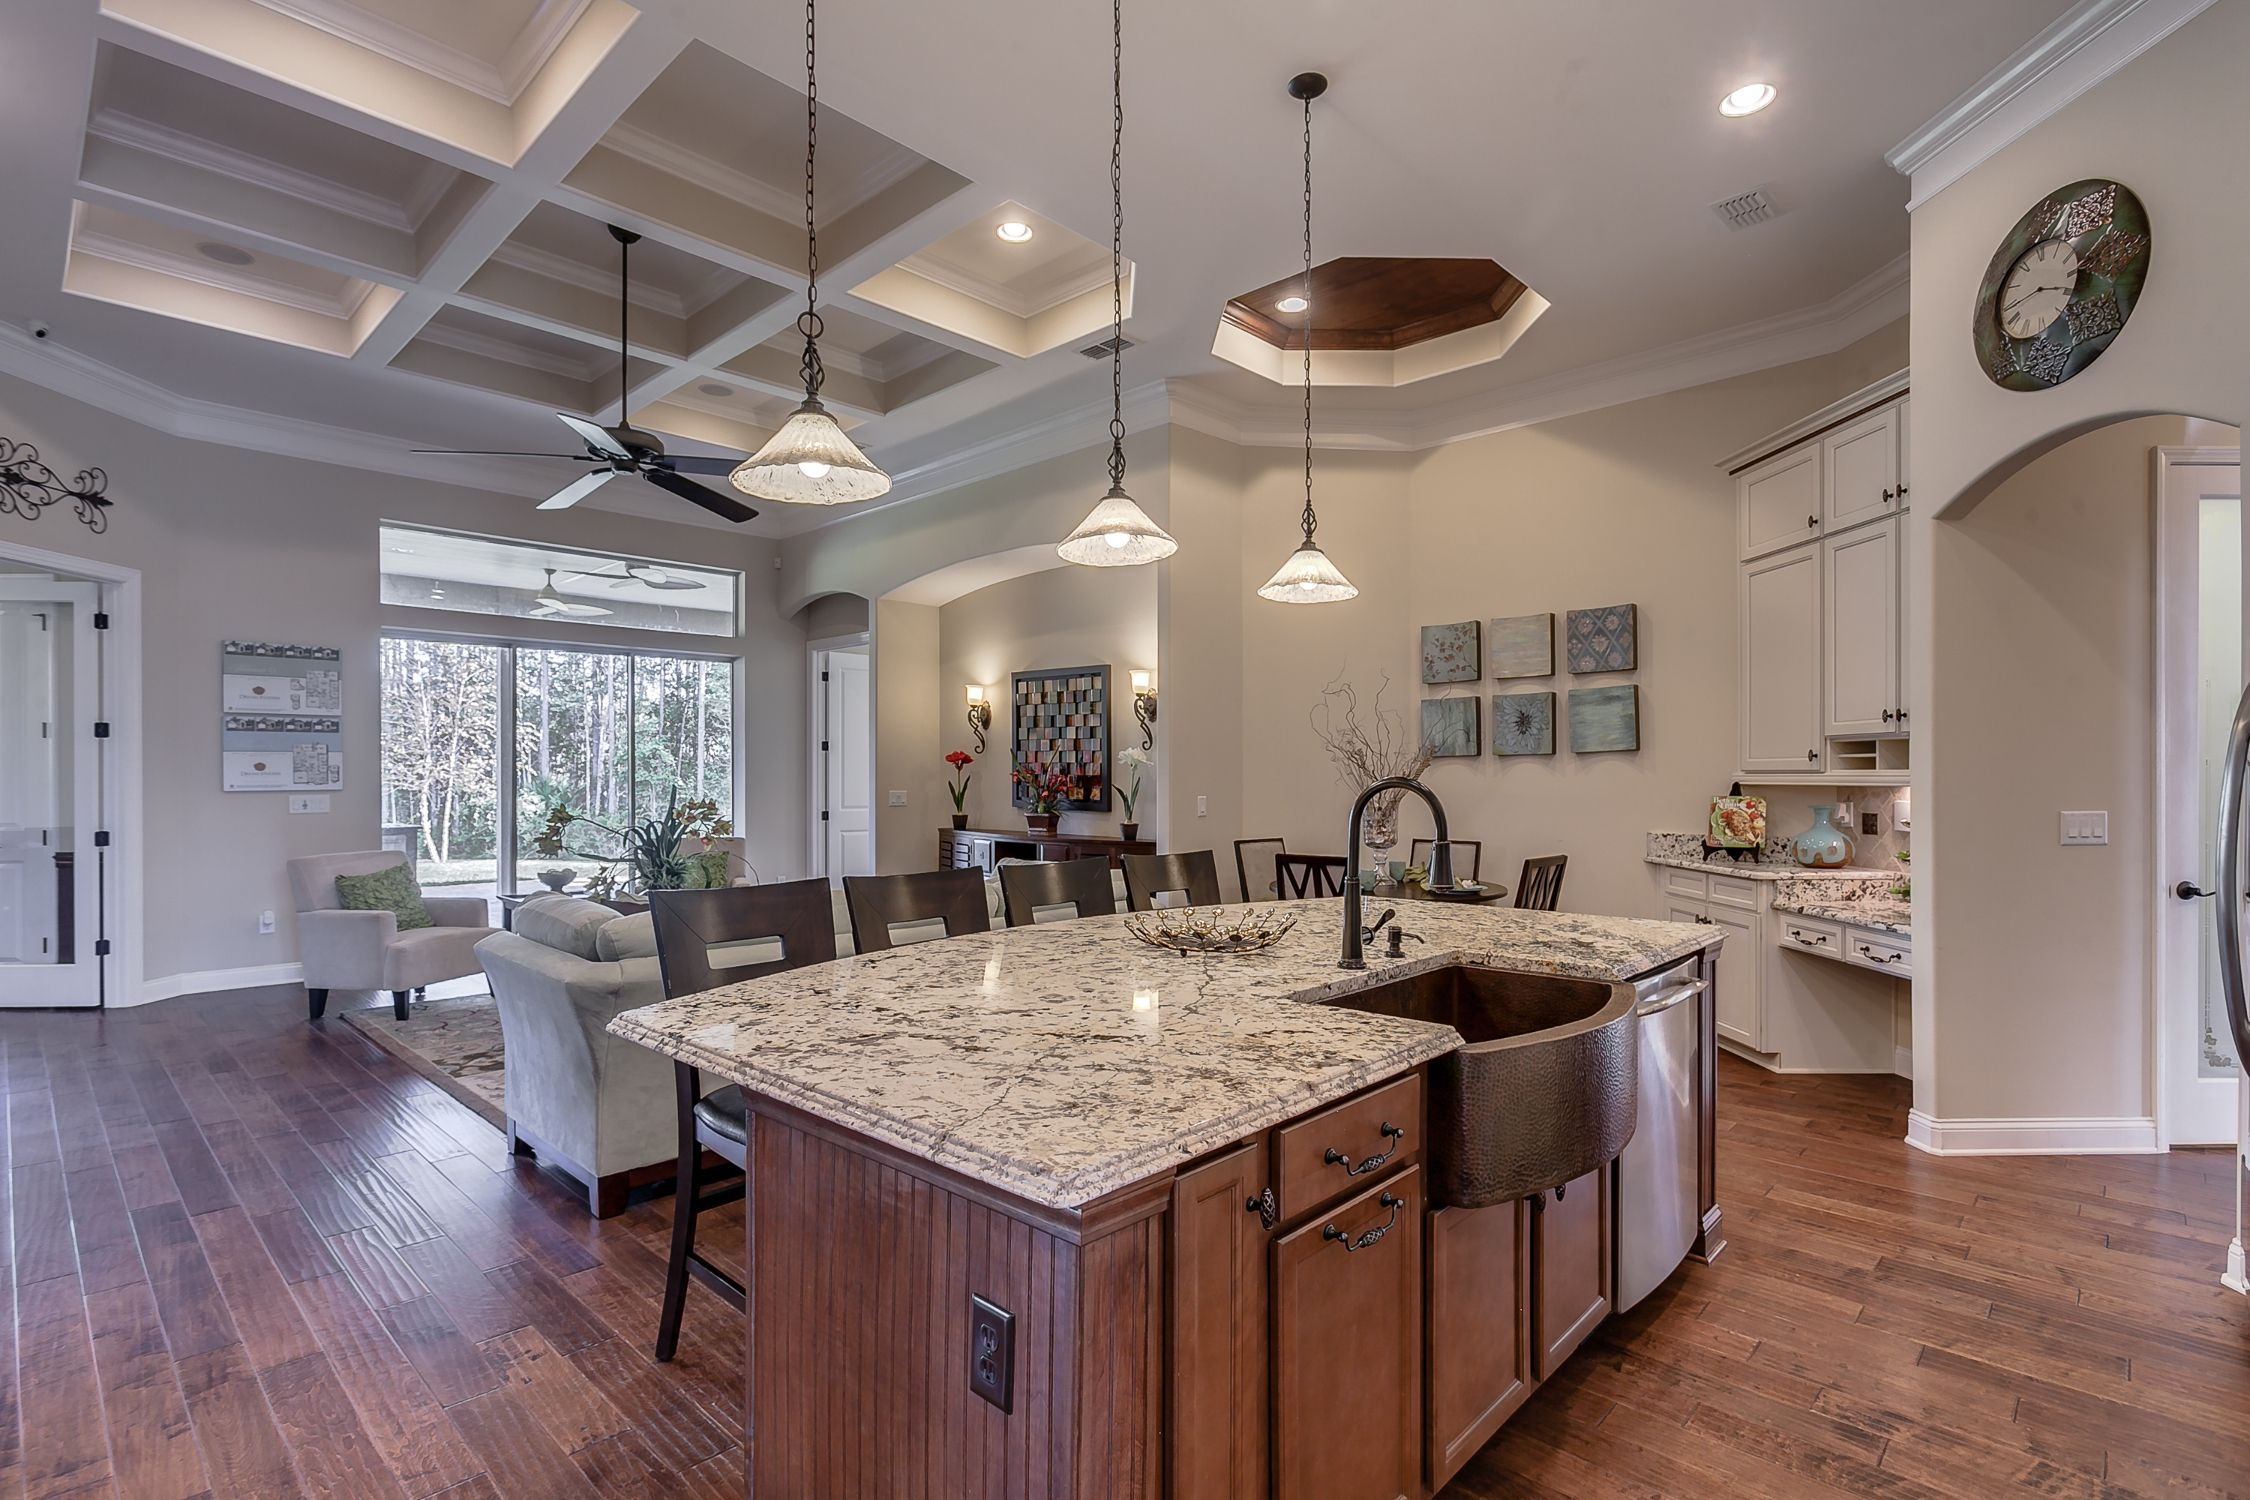 Model Kitchen the valencia ii model kitchen viewdream finders homes of the